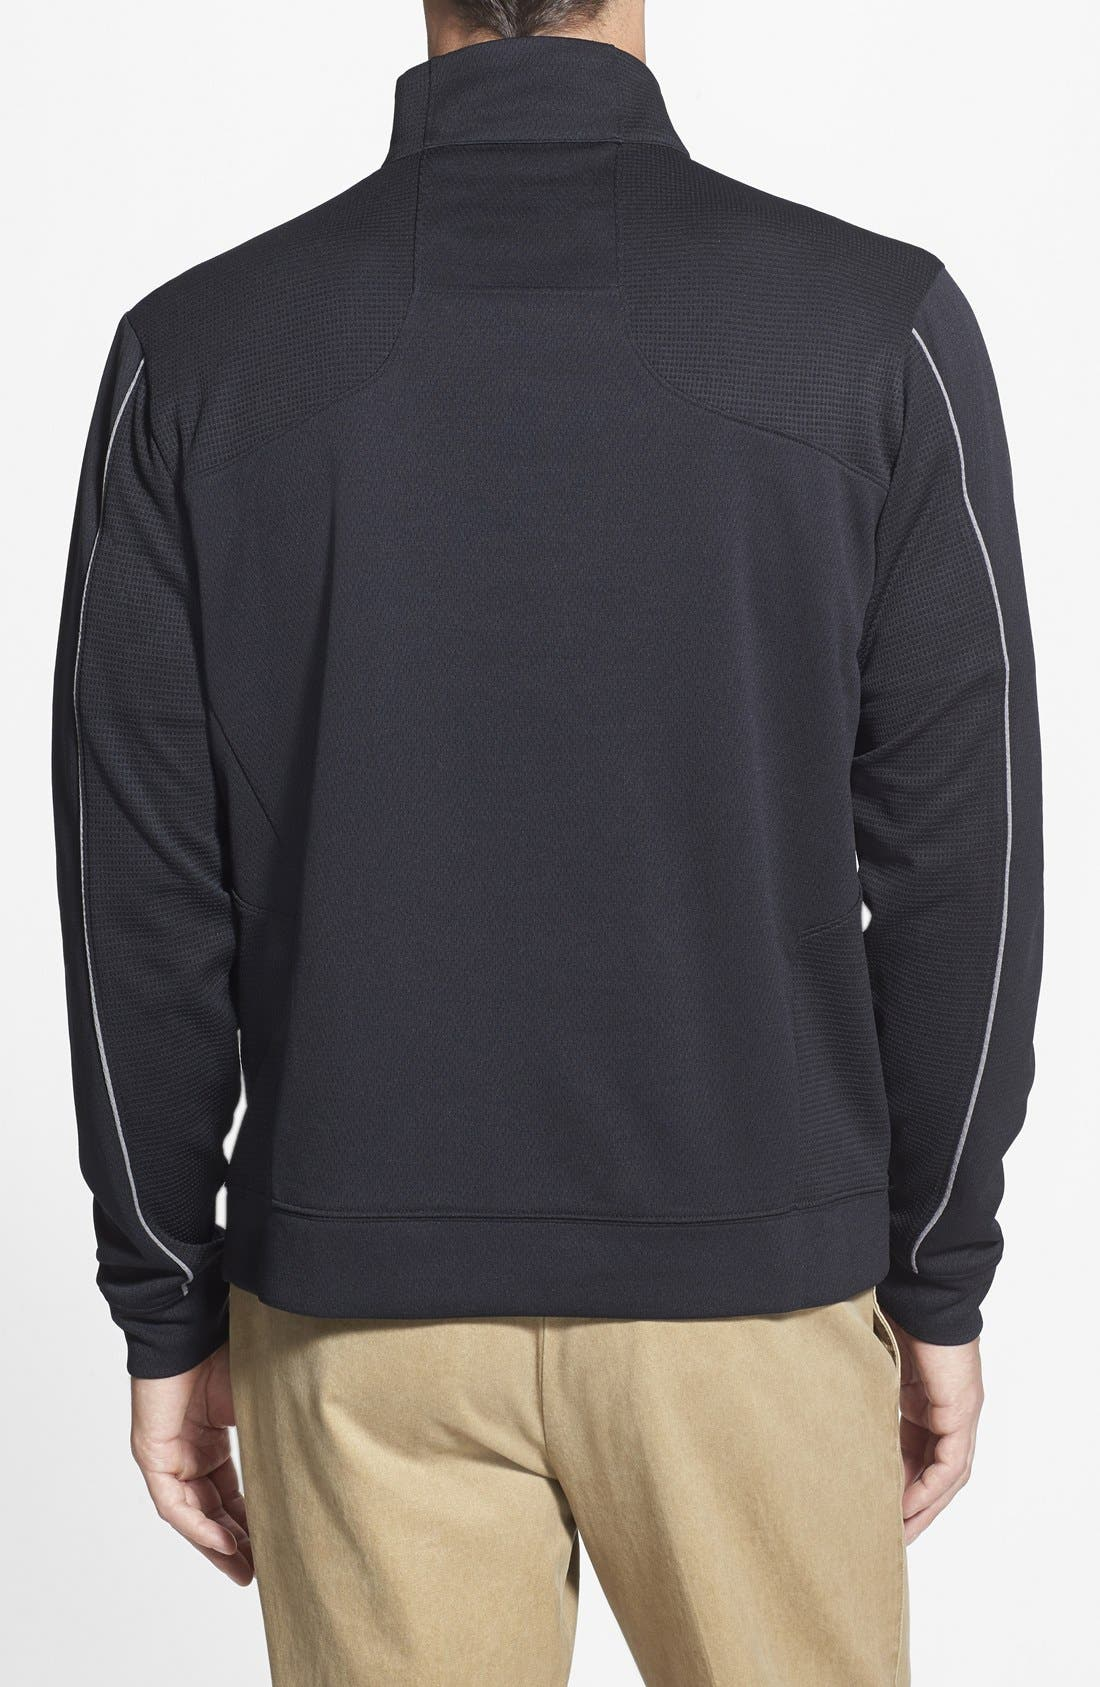 Cleveland Browns - Edge DryTec Moisture Wicking Half Zip Pullover,                             Alternate thumbnail 2, color,                             Black